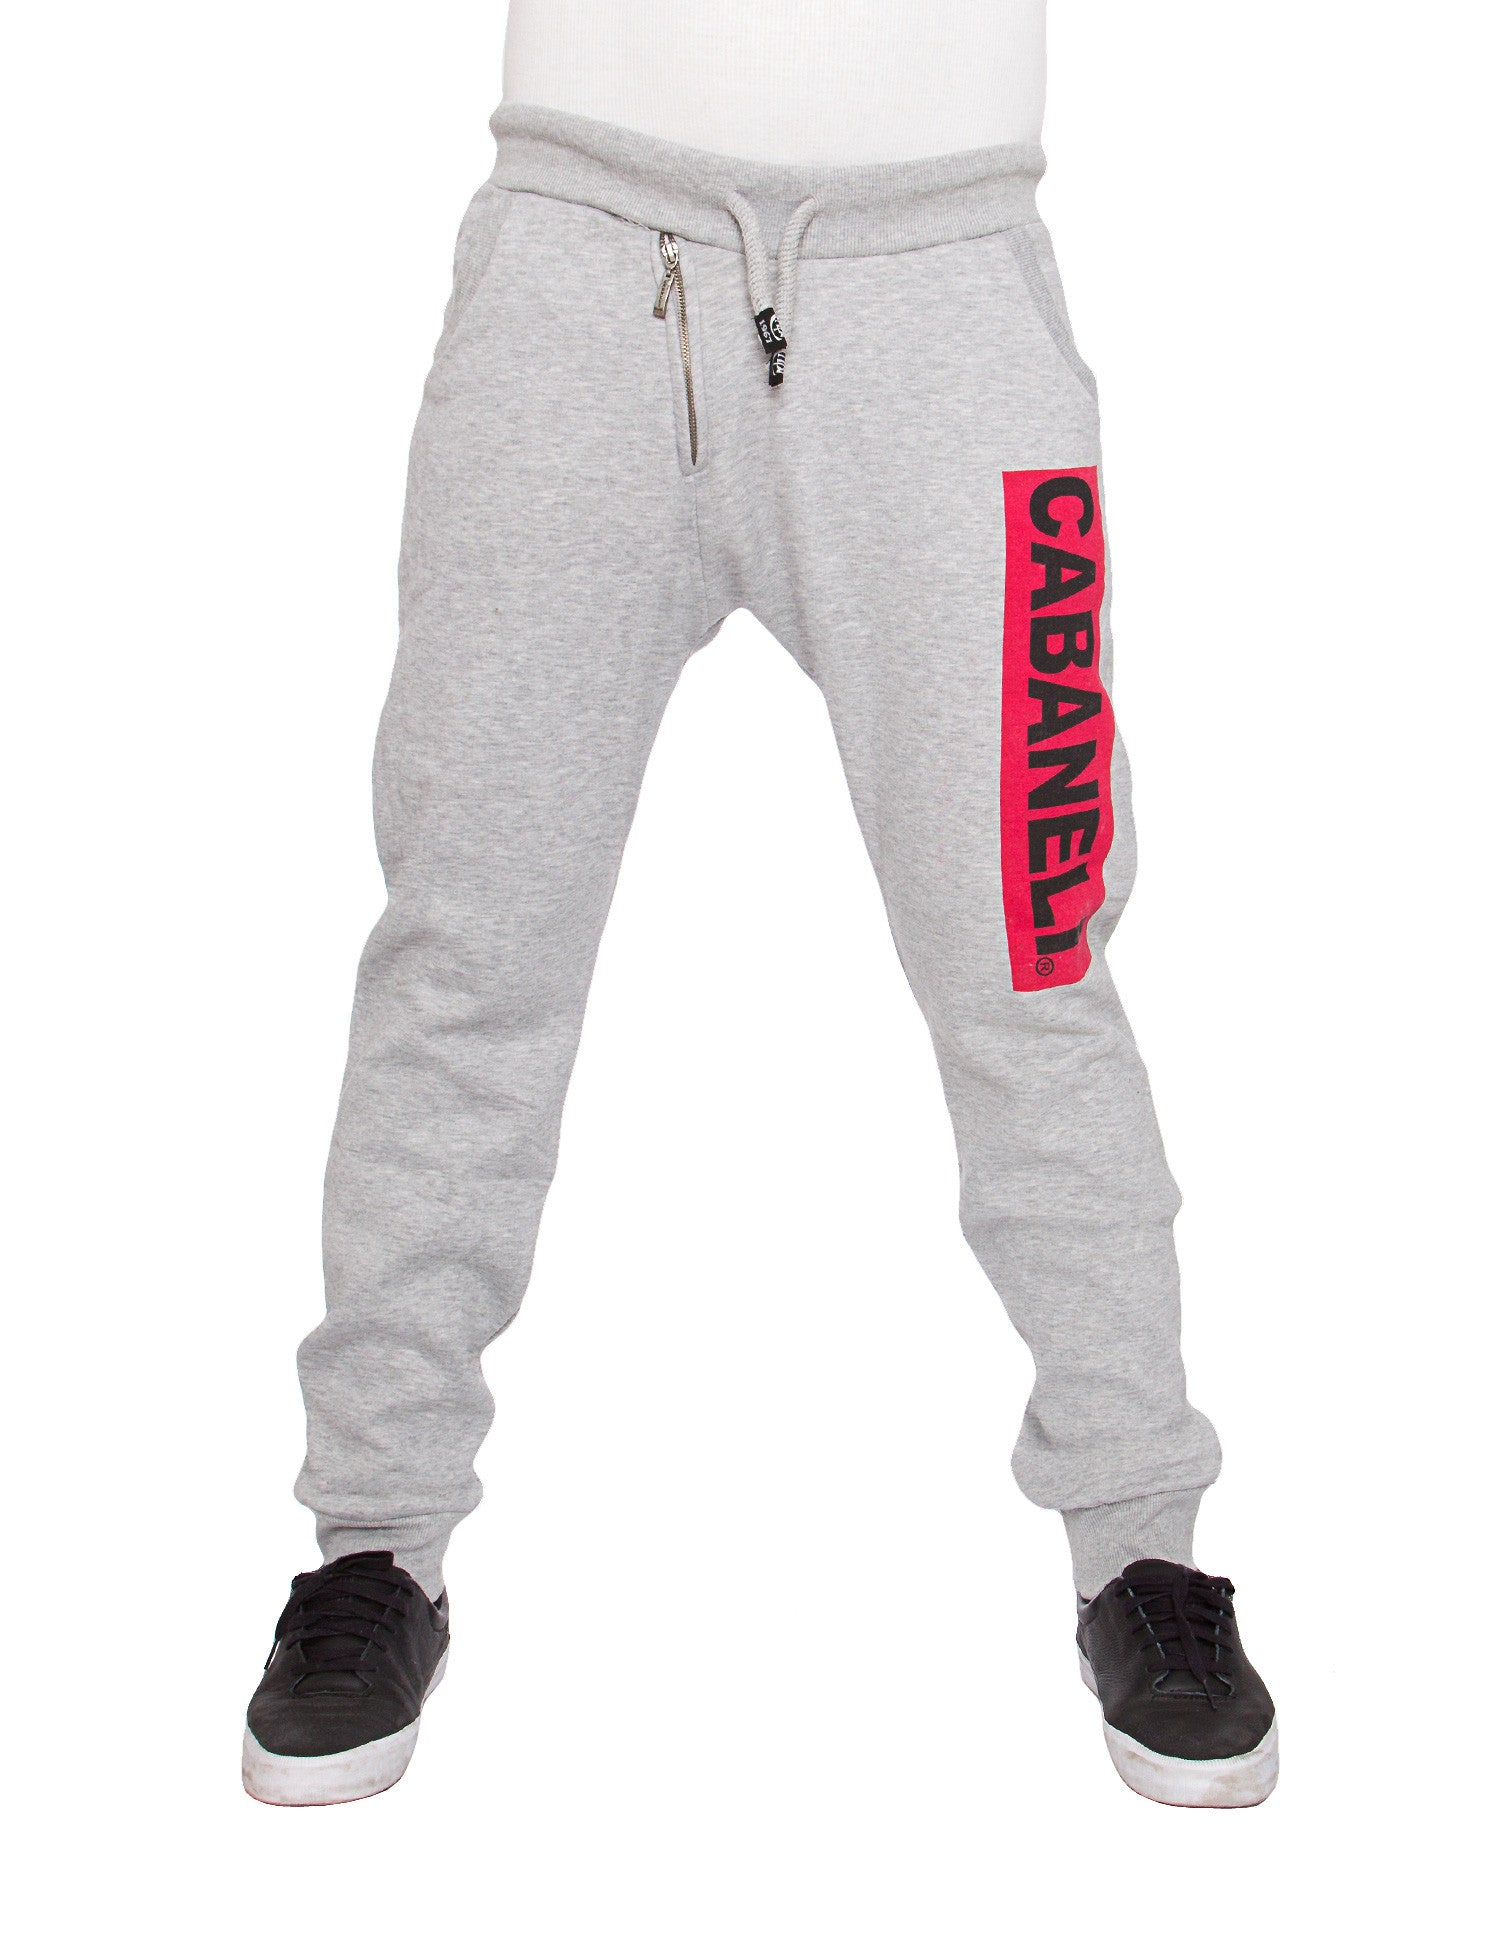 Cabaneli Bar Logo Sweatpant ID 010 Grey